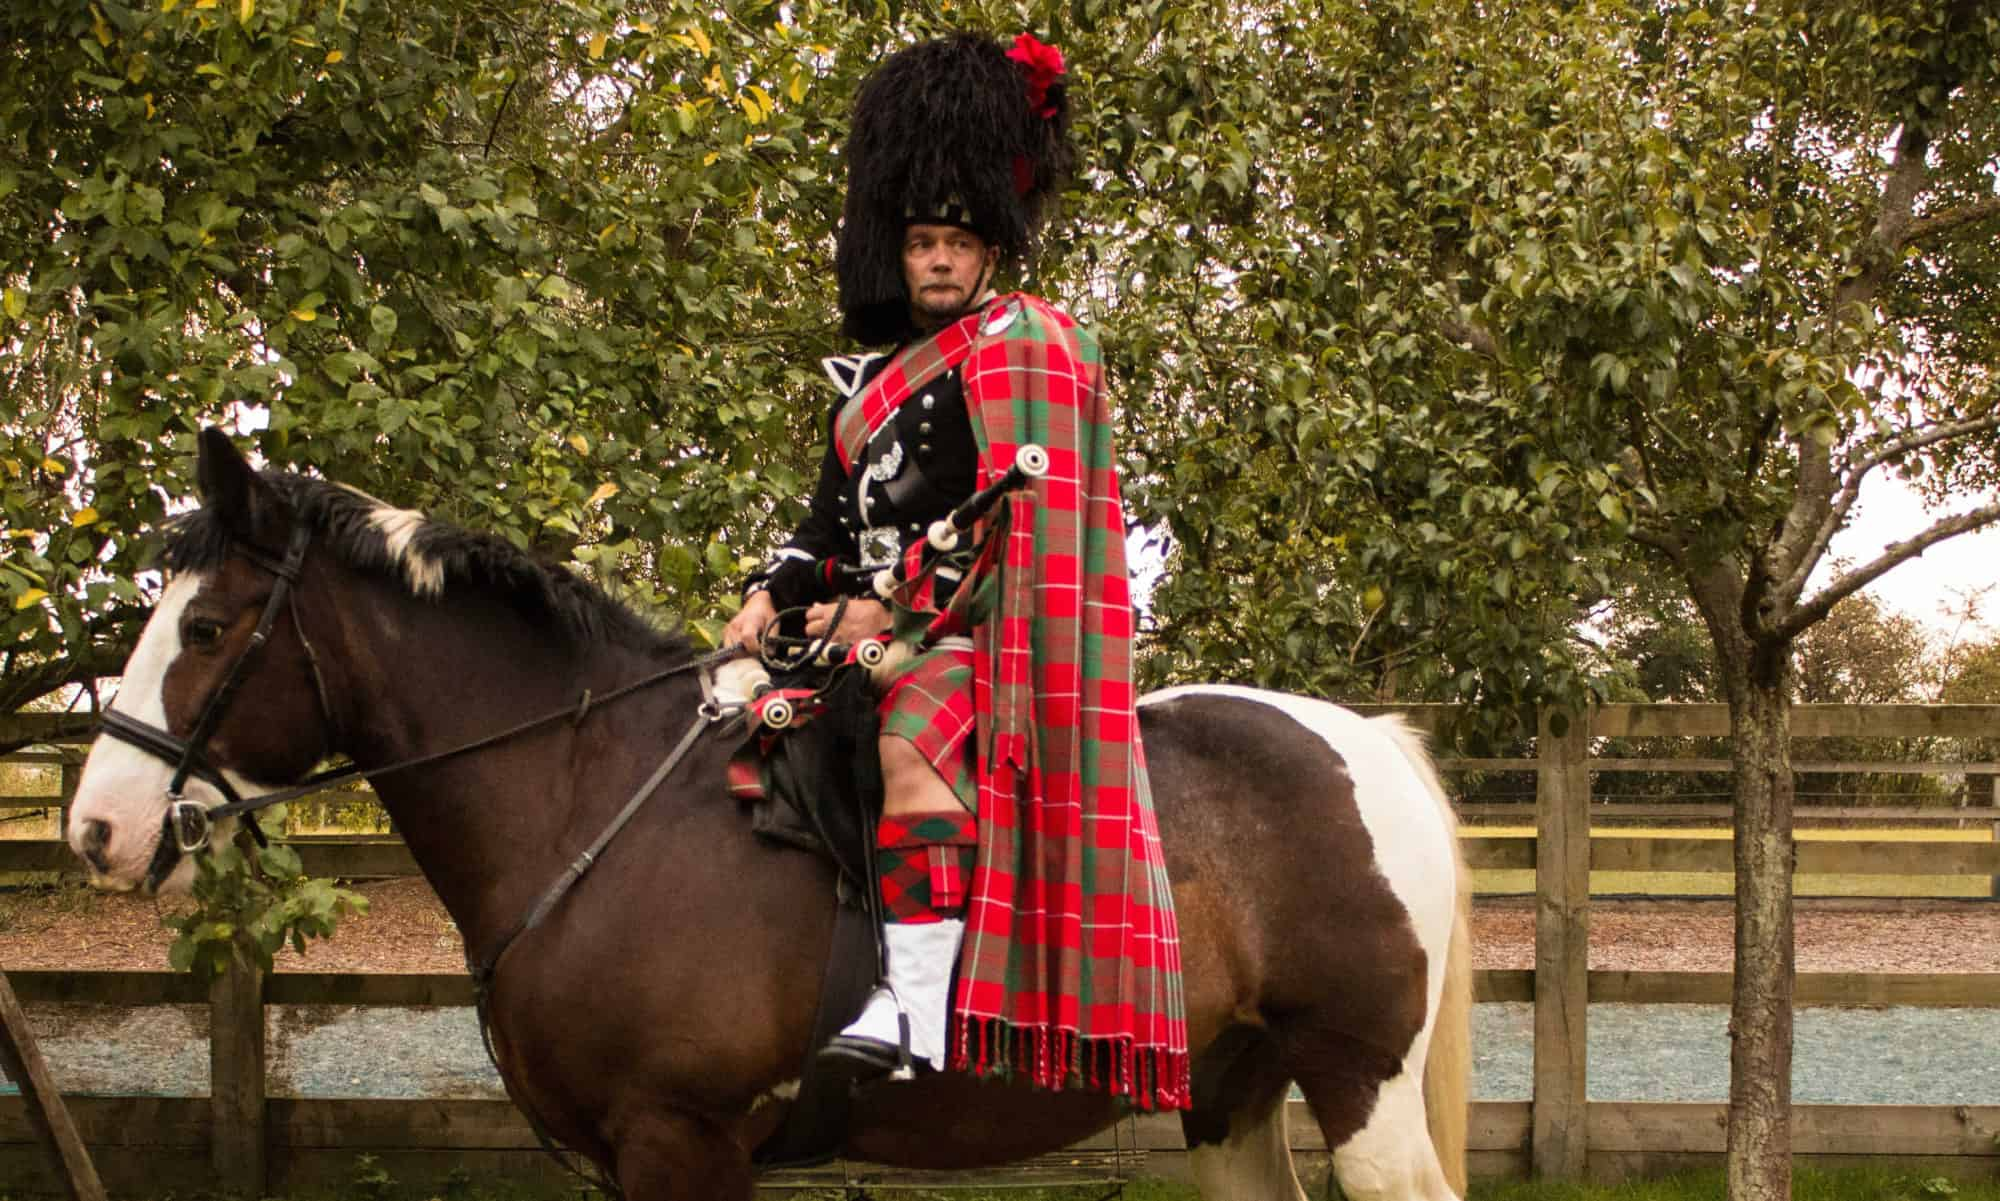 The East of England Bagpiper